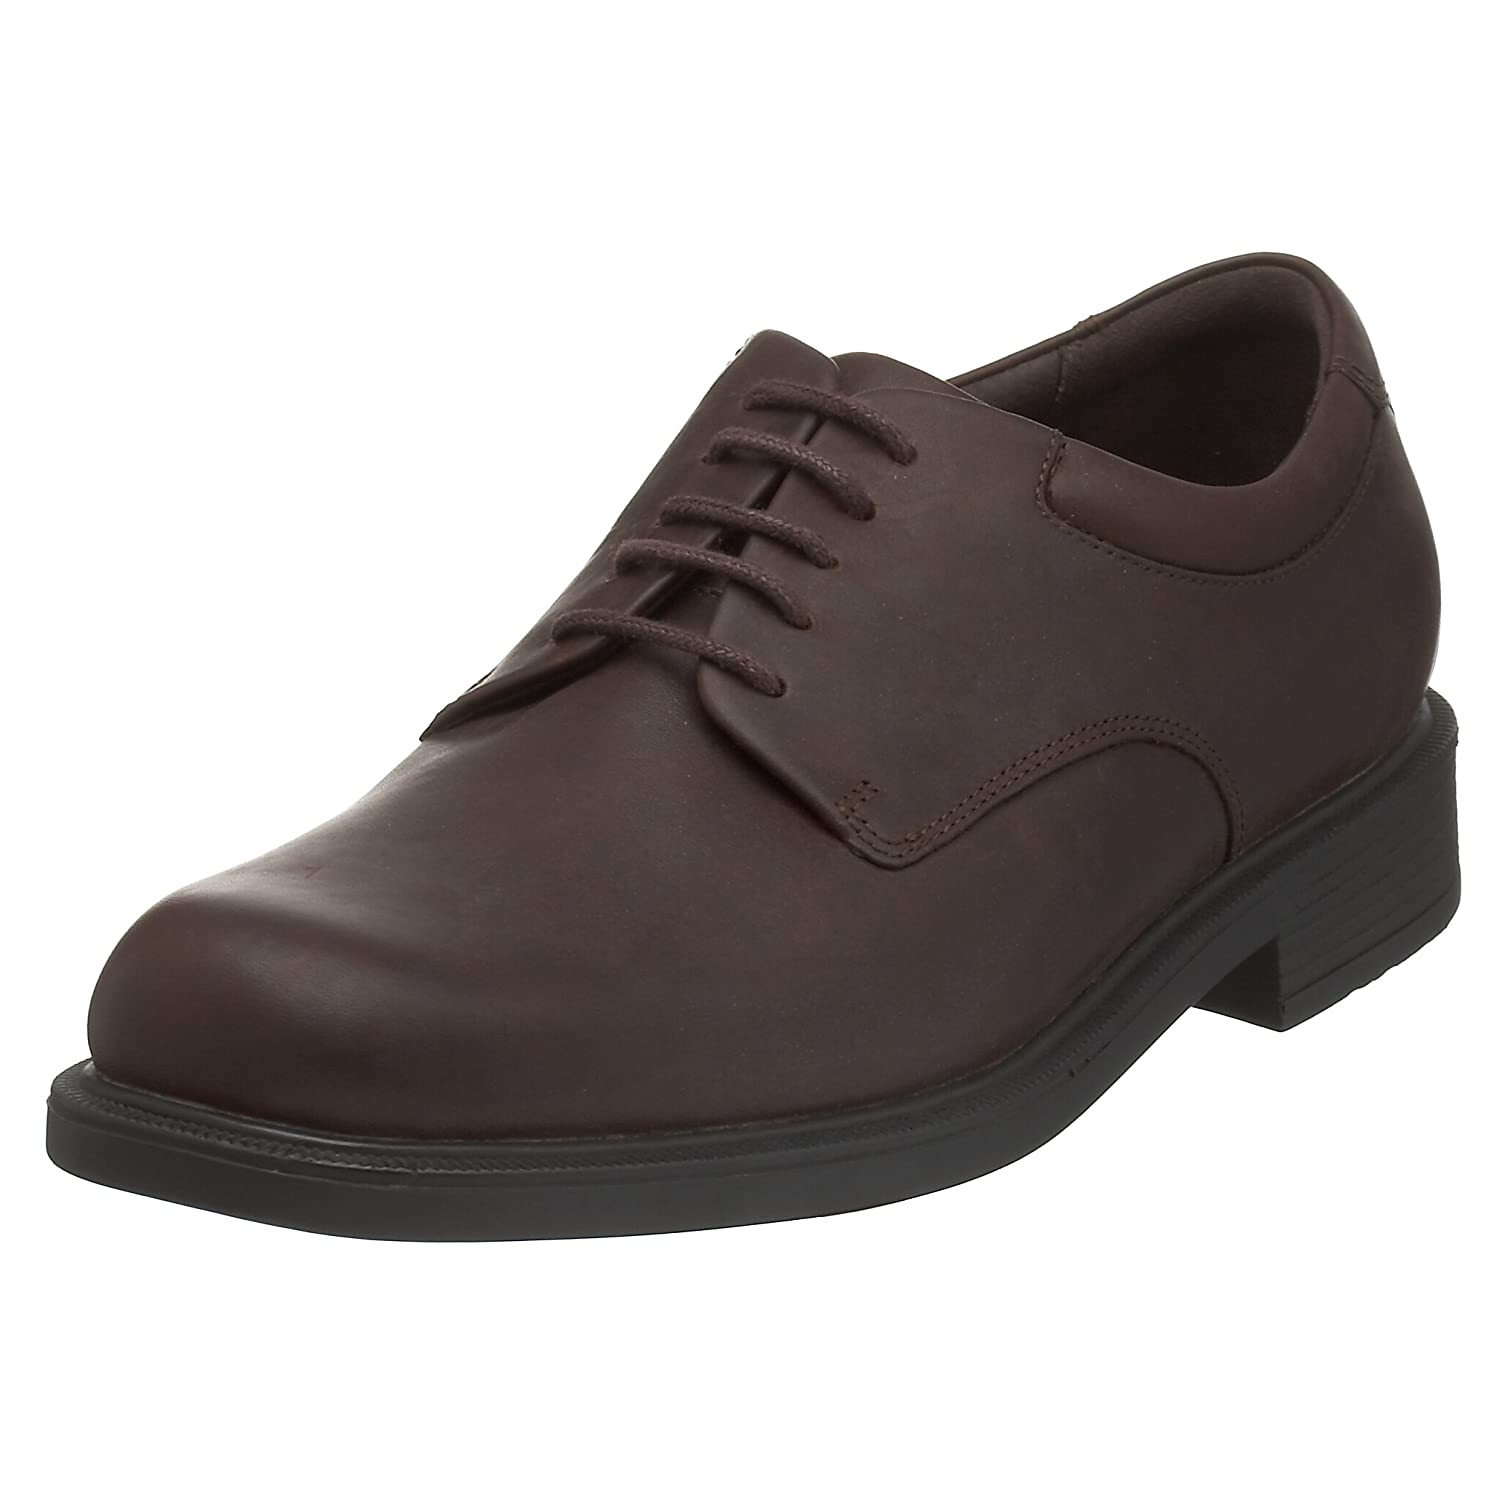 Rockport Men's Margin Oxford m77353 72244